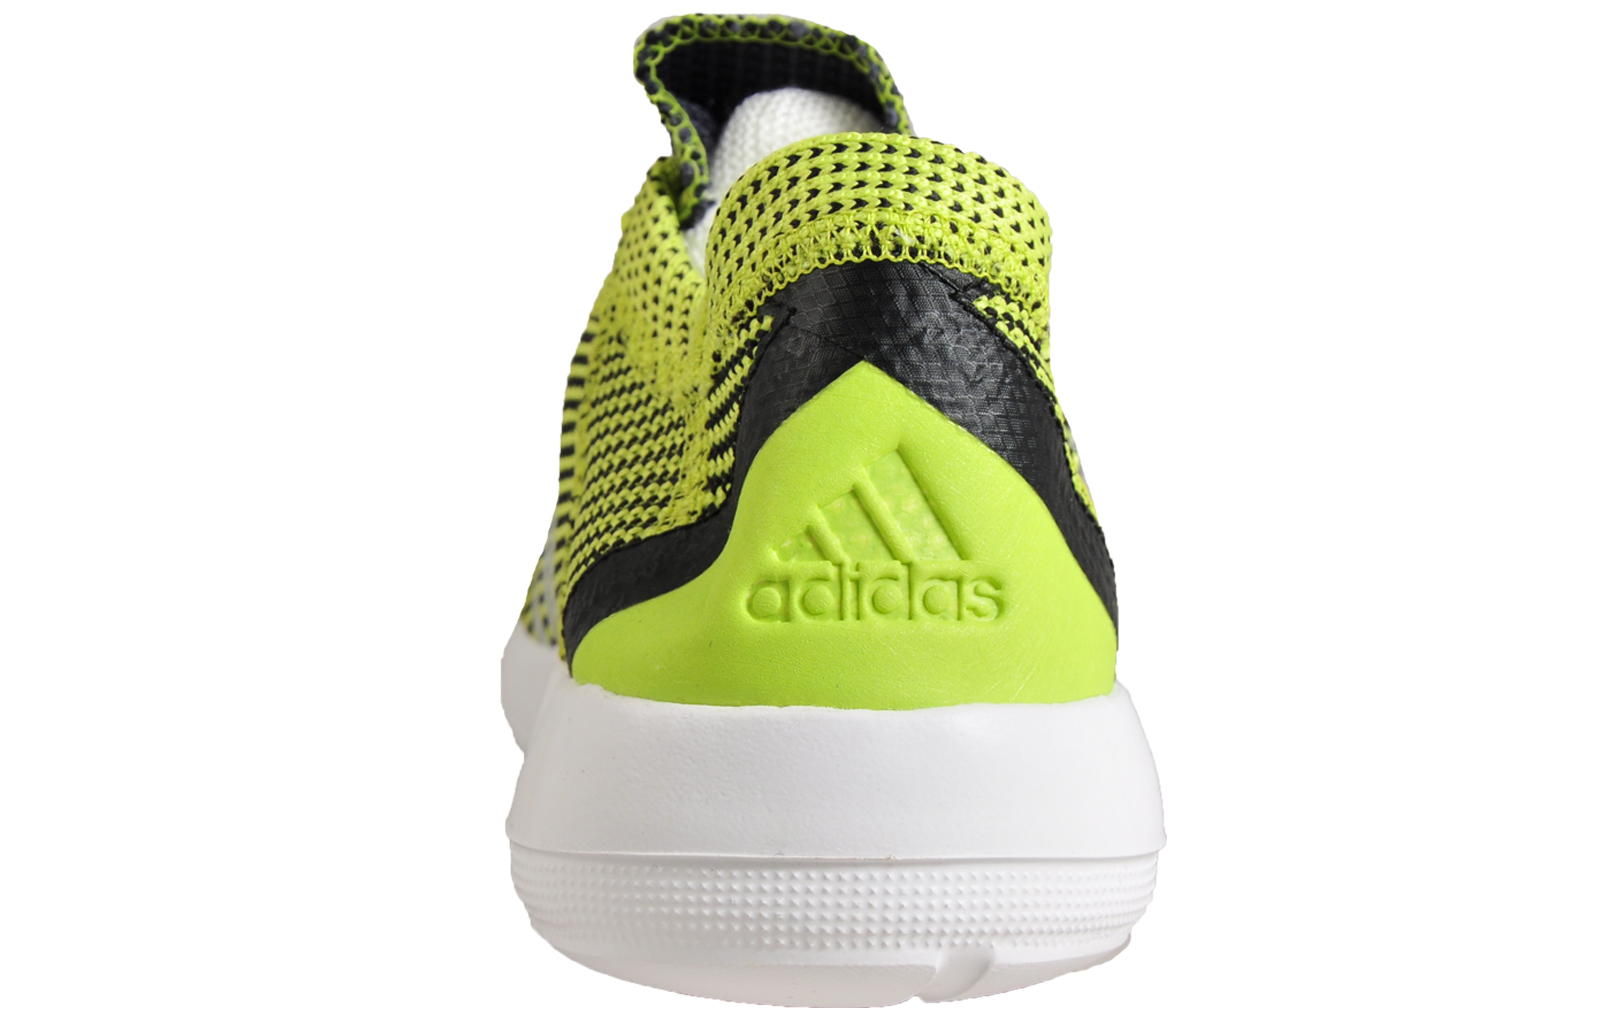 47bdbe774 Adidas Element Refine Tricot Men s Premium Running Shoes Fitness Gym  Trainers